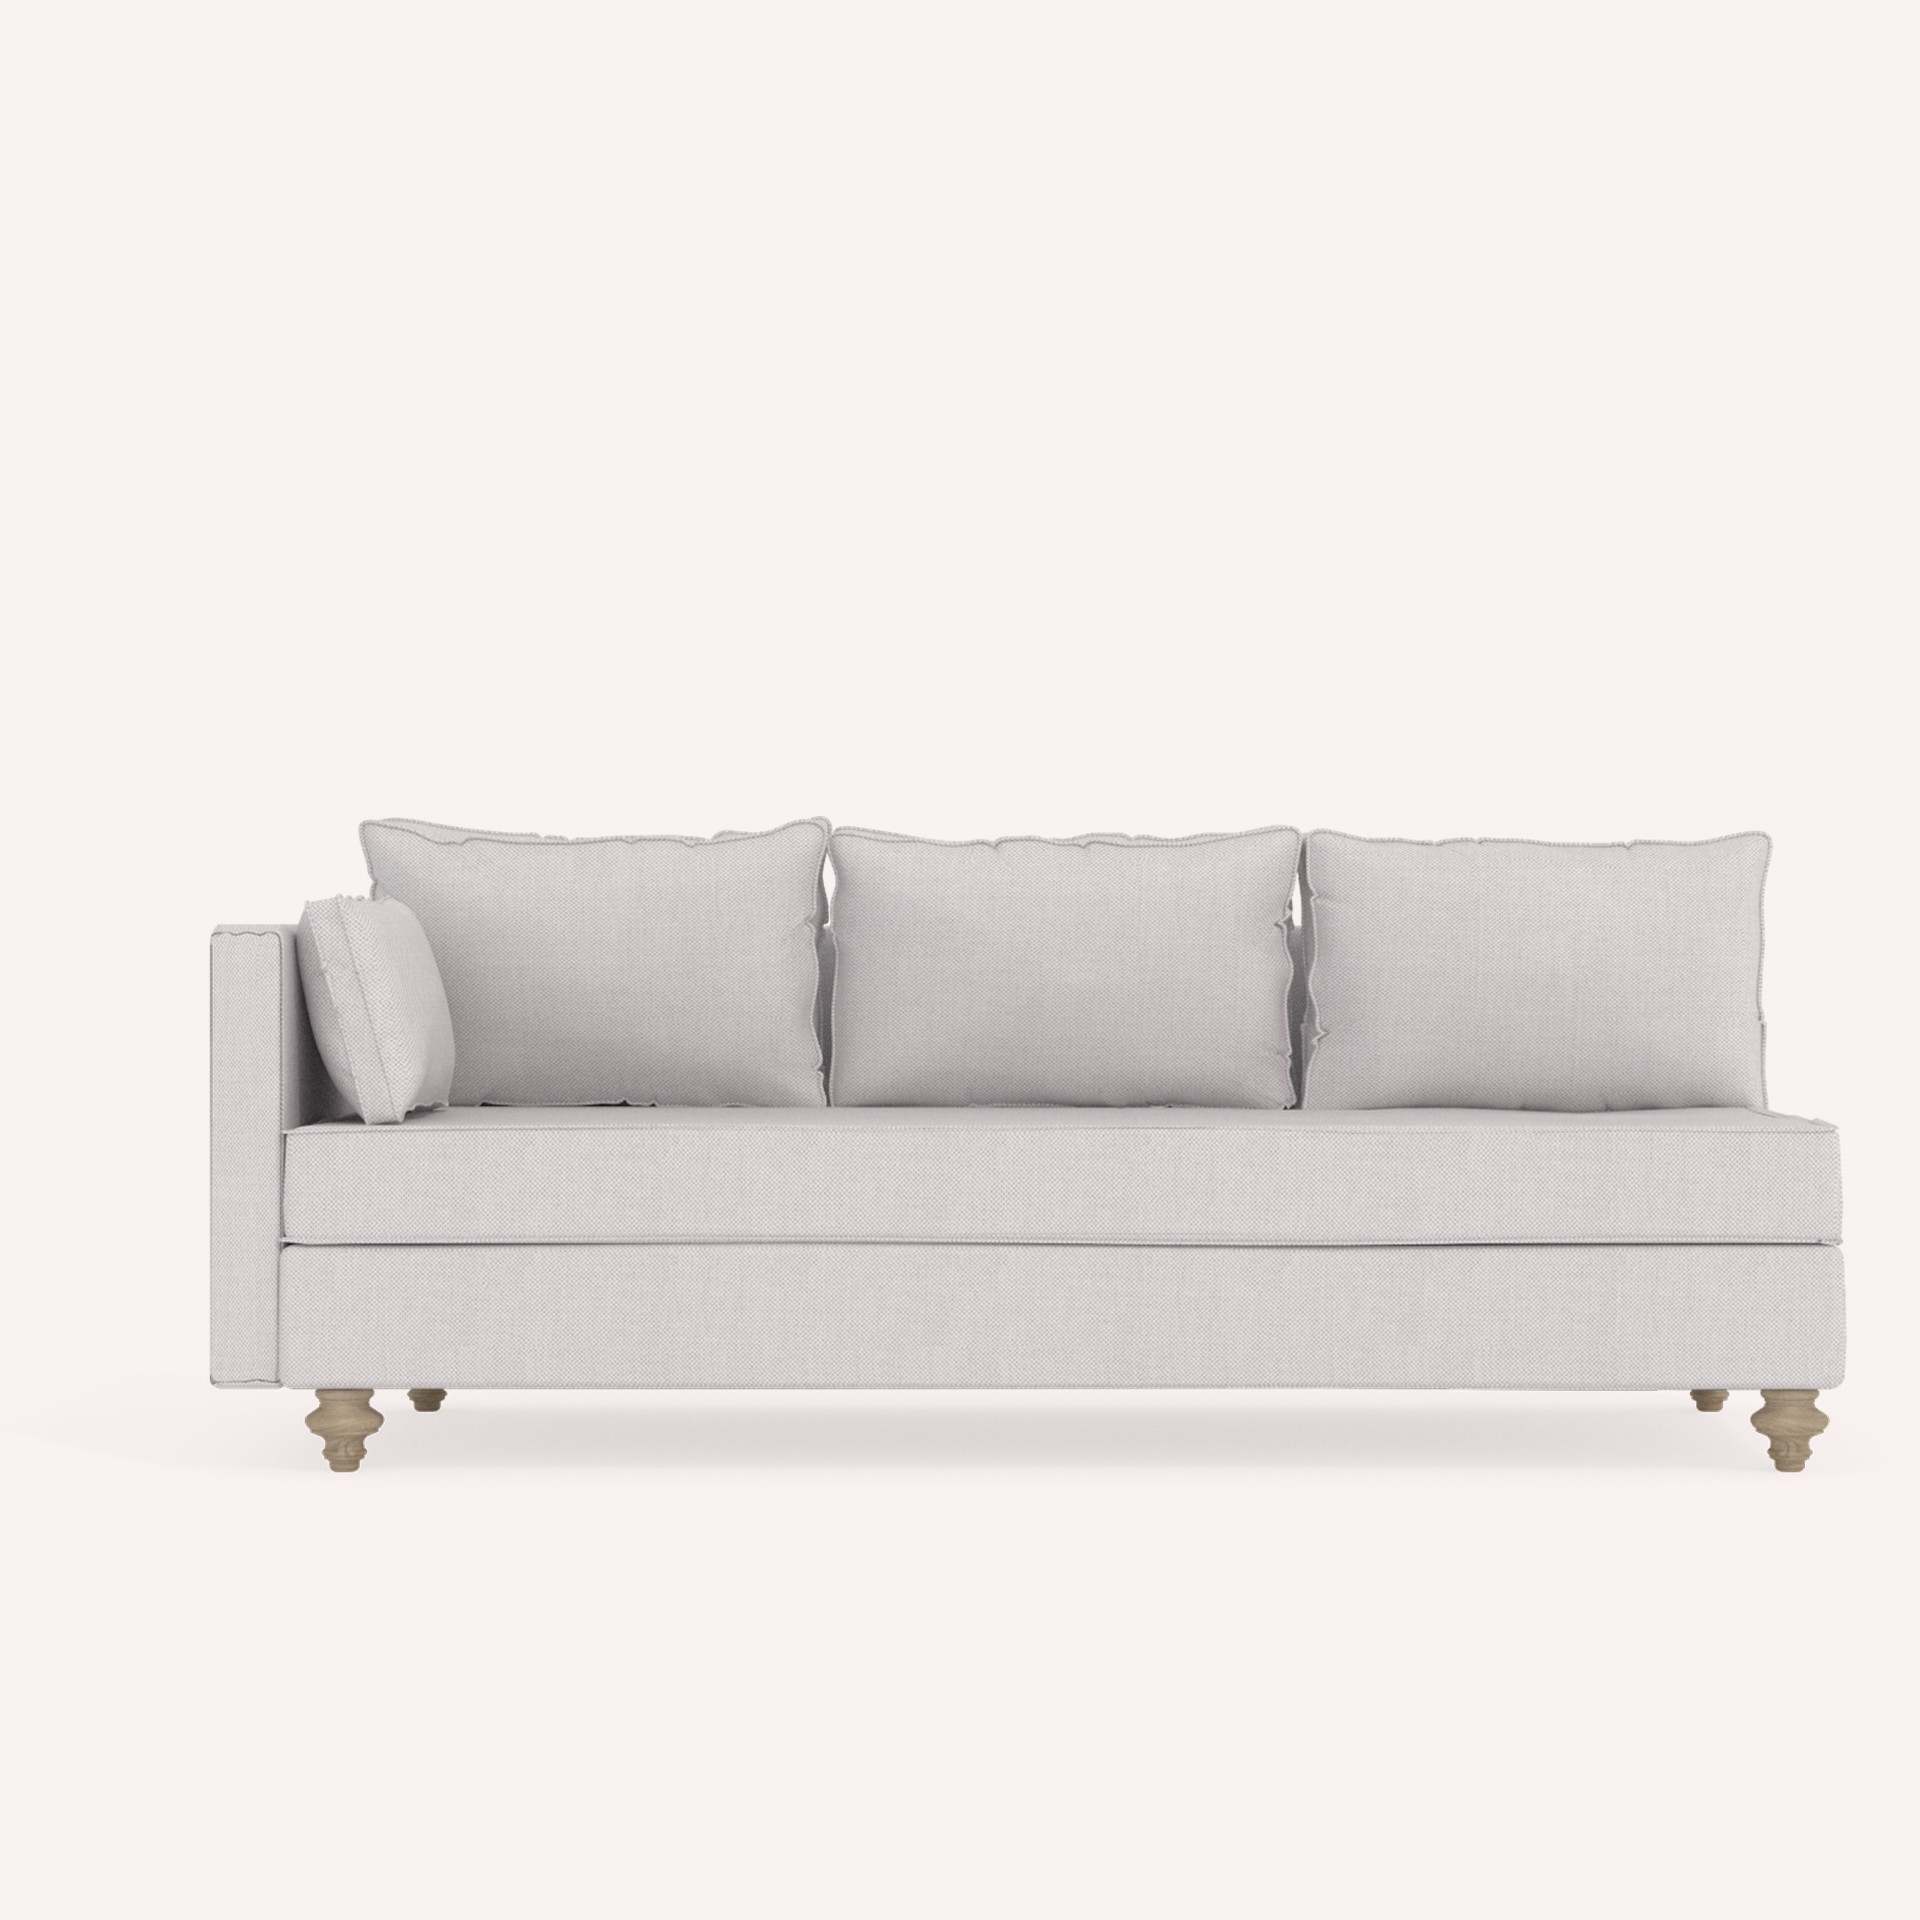 one arm sofa name salvation army pickup 3 seat myrsini with coco mat